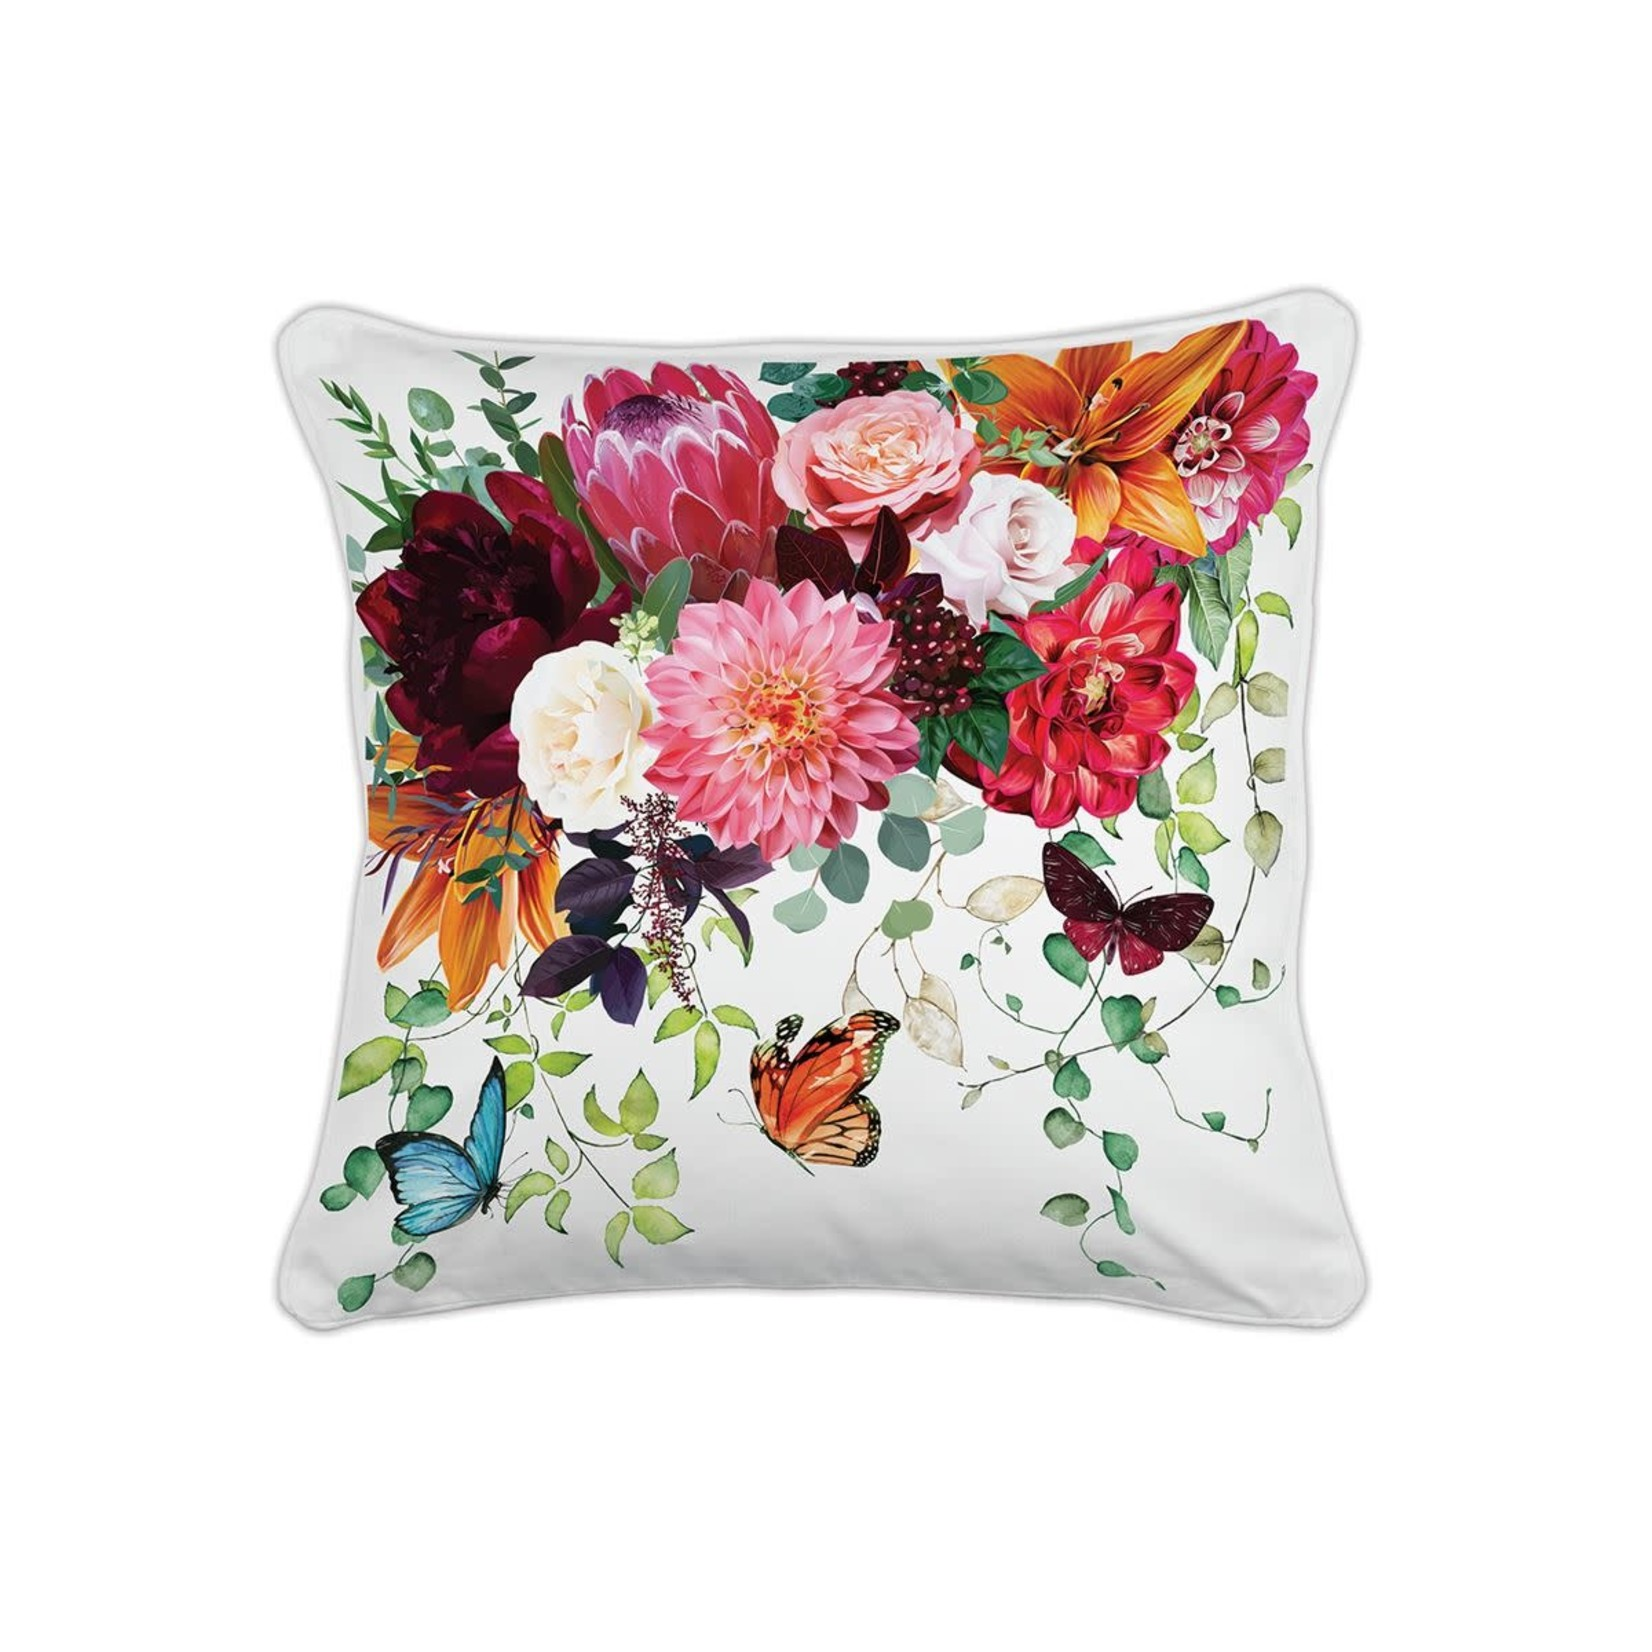 Michel Design Works Sweet Floral Melody Square Pillow